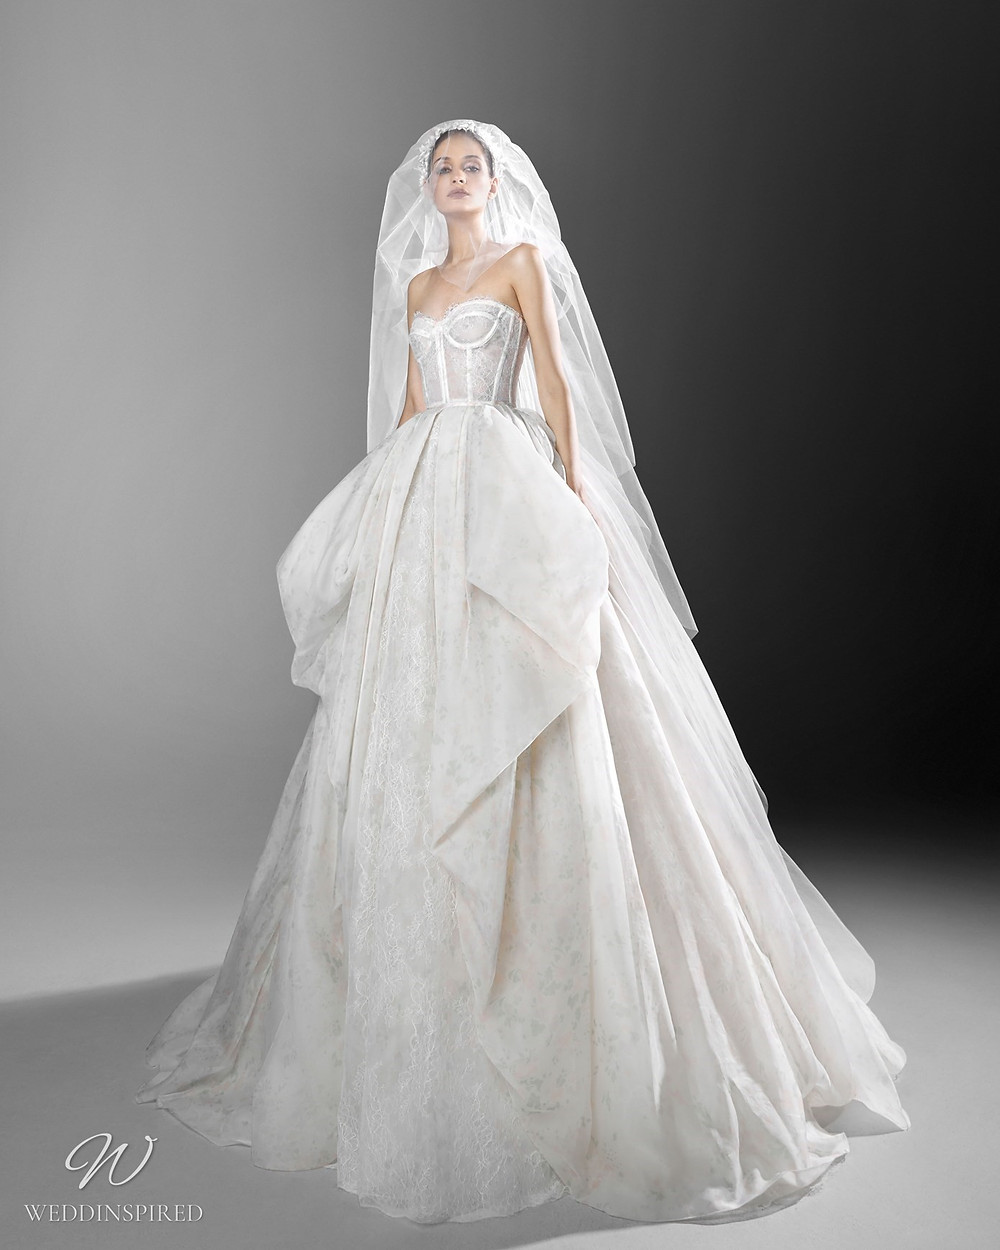 A Zuhair Murad white princess ball gown wedding dress with a sweetheart neckline and bustier top